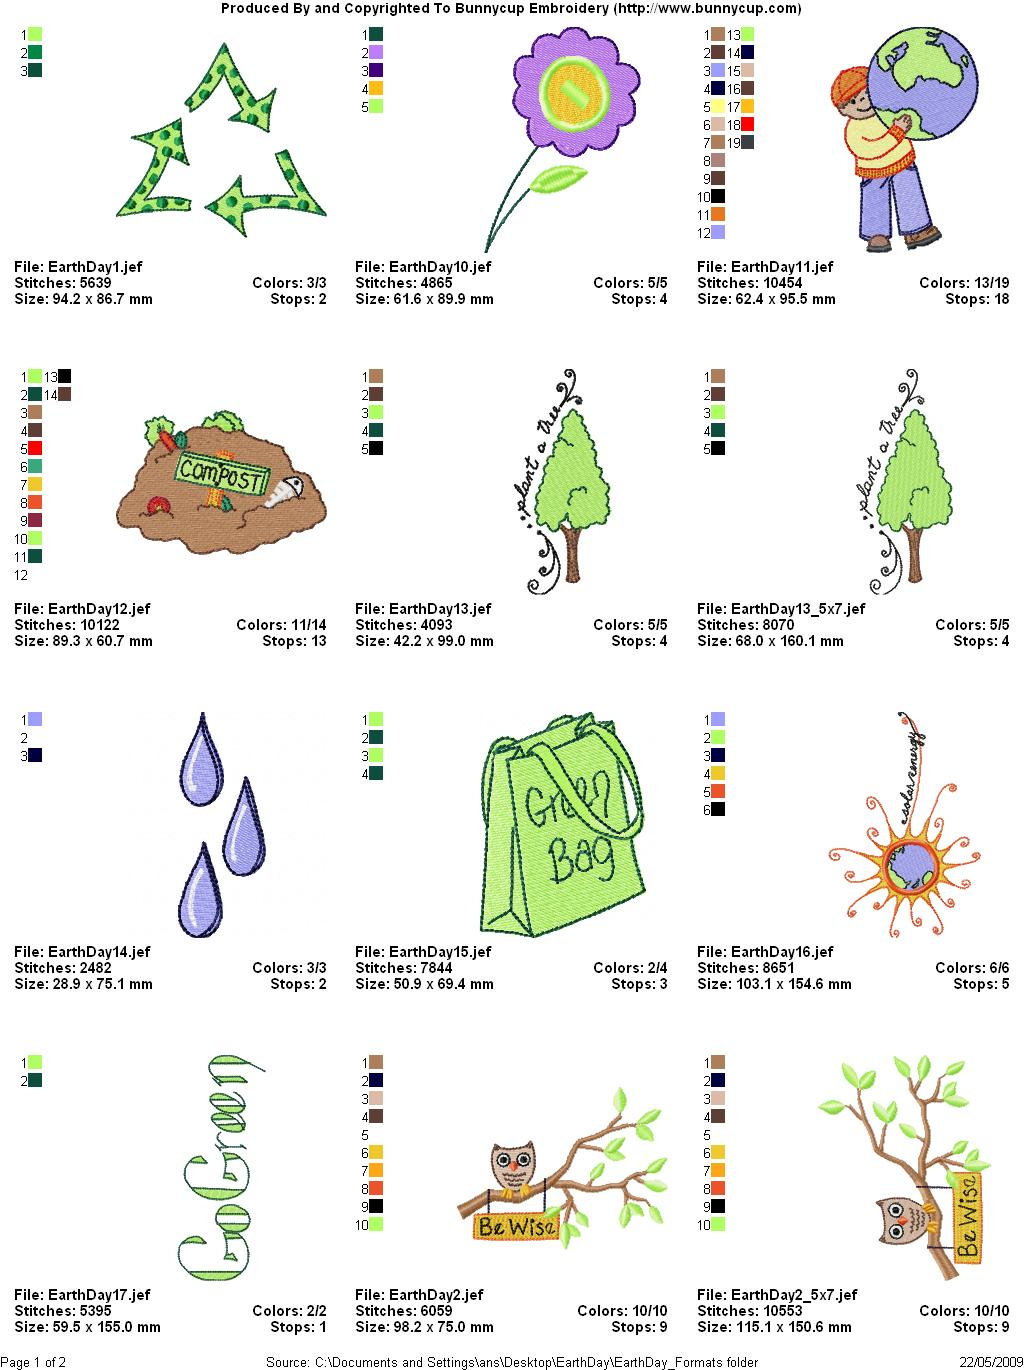 Earth day embroidery designs bunnycup embroidery thread chart 1 ccuart Gallery